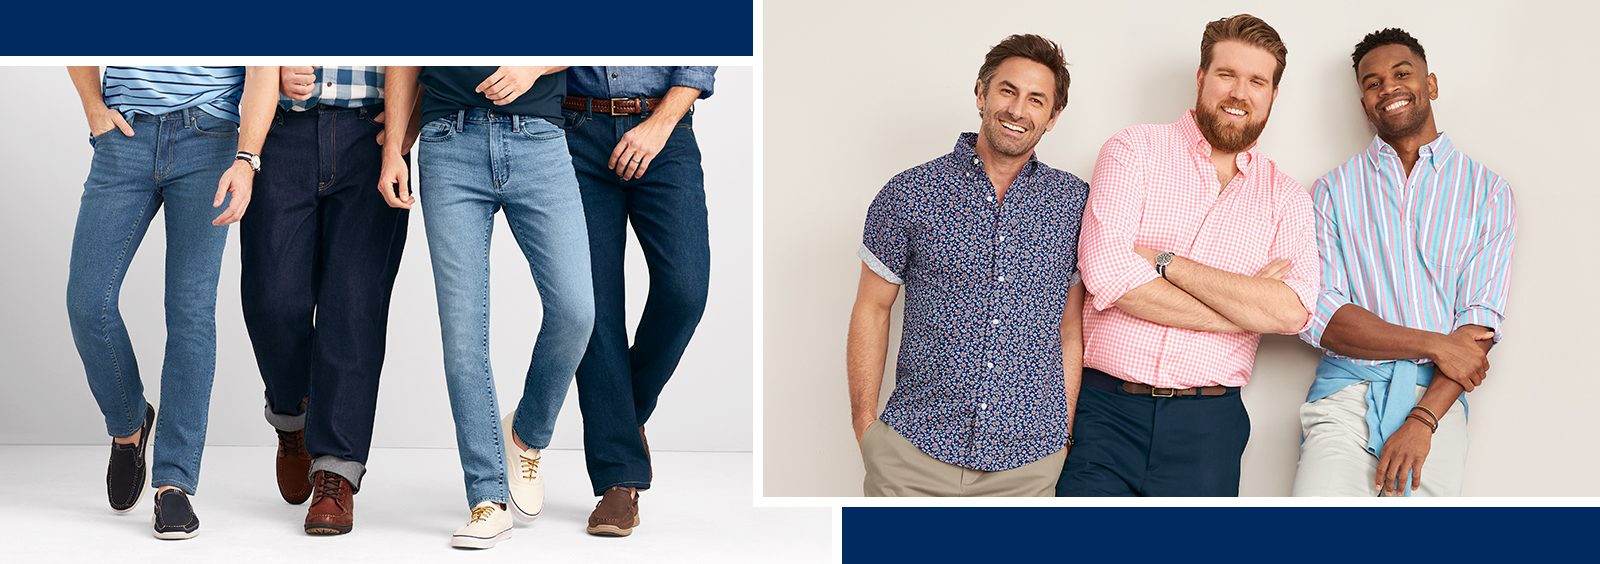 Big and Tall Jeans vs. Khakis: Which Are Best?